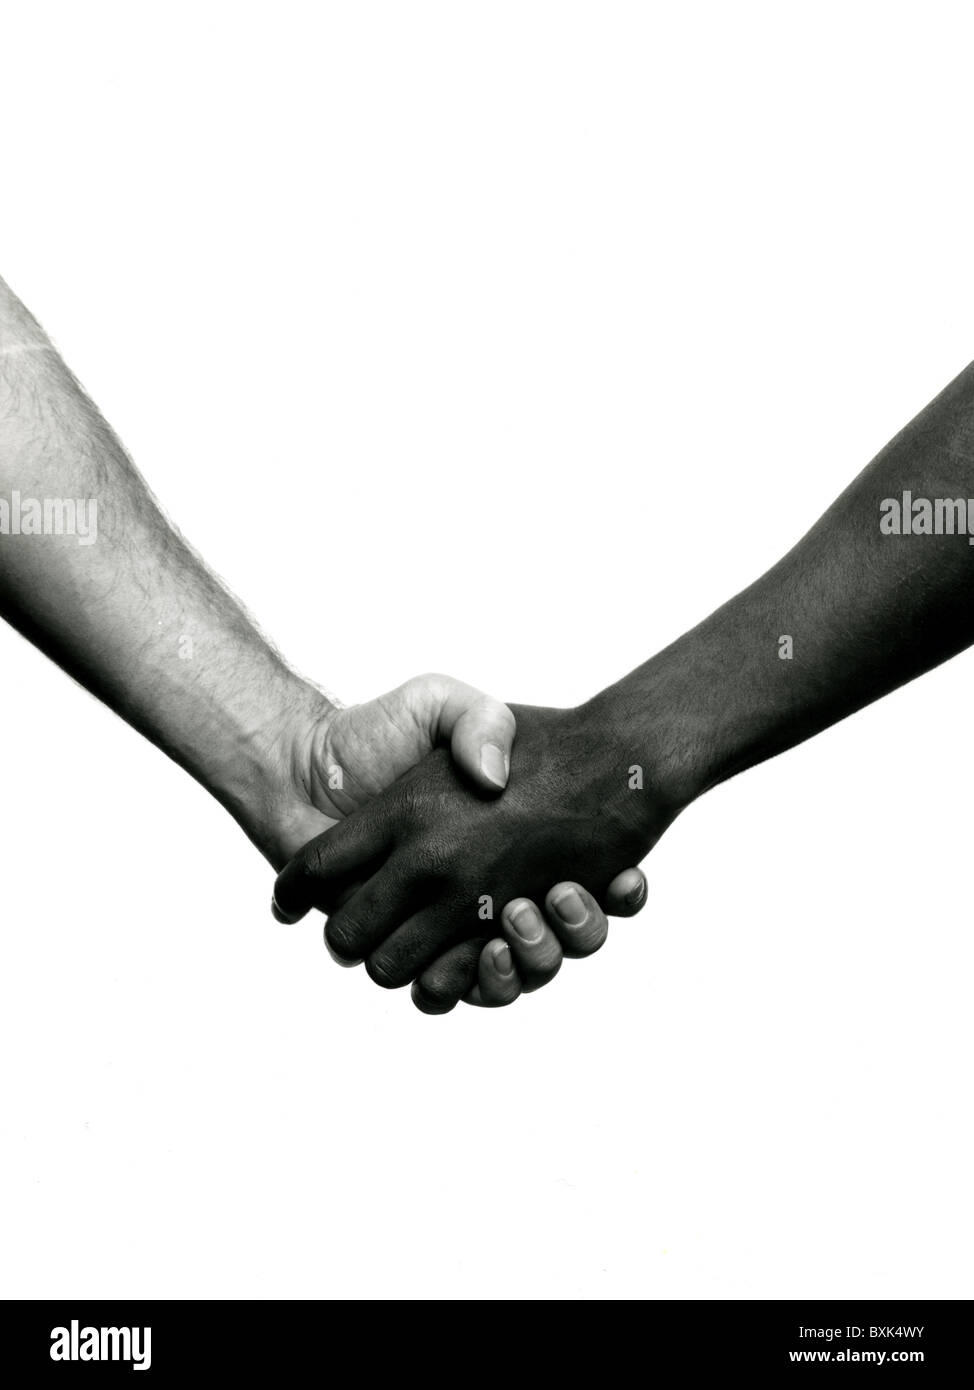 b&w picture of two men shaking, hands only; one man black and one man white; biracail handshake - Stock Image